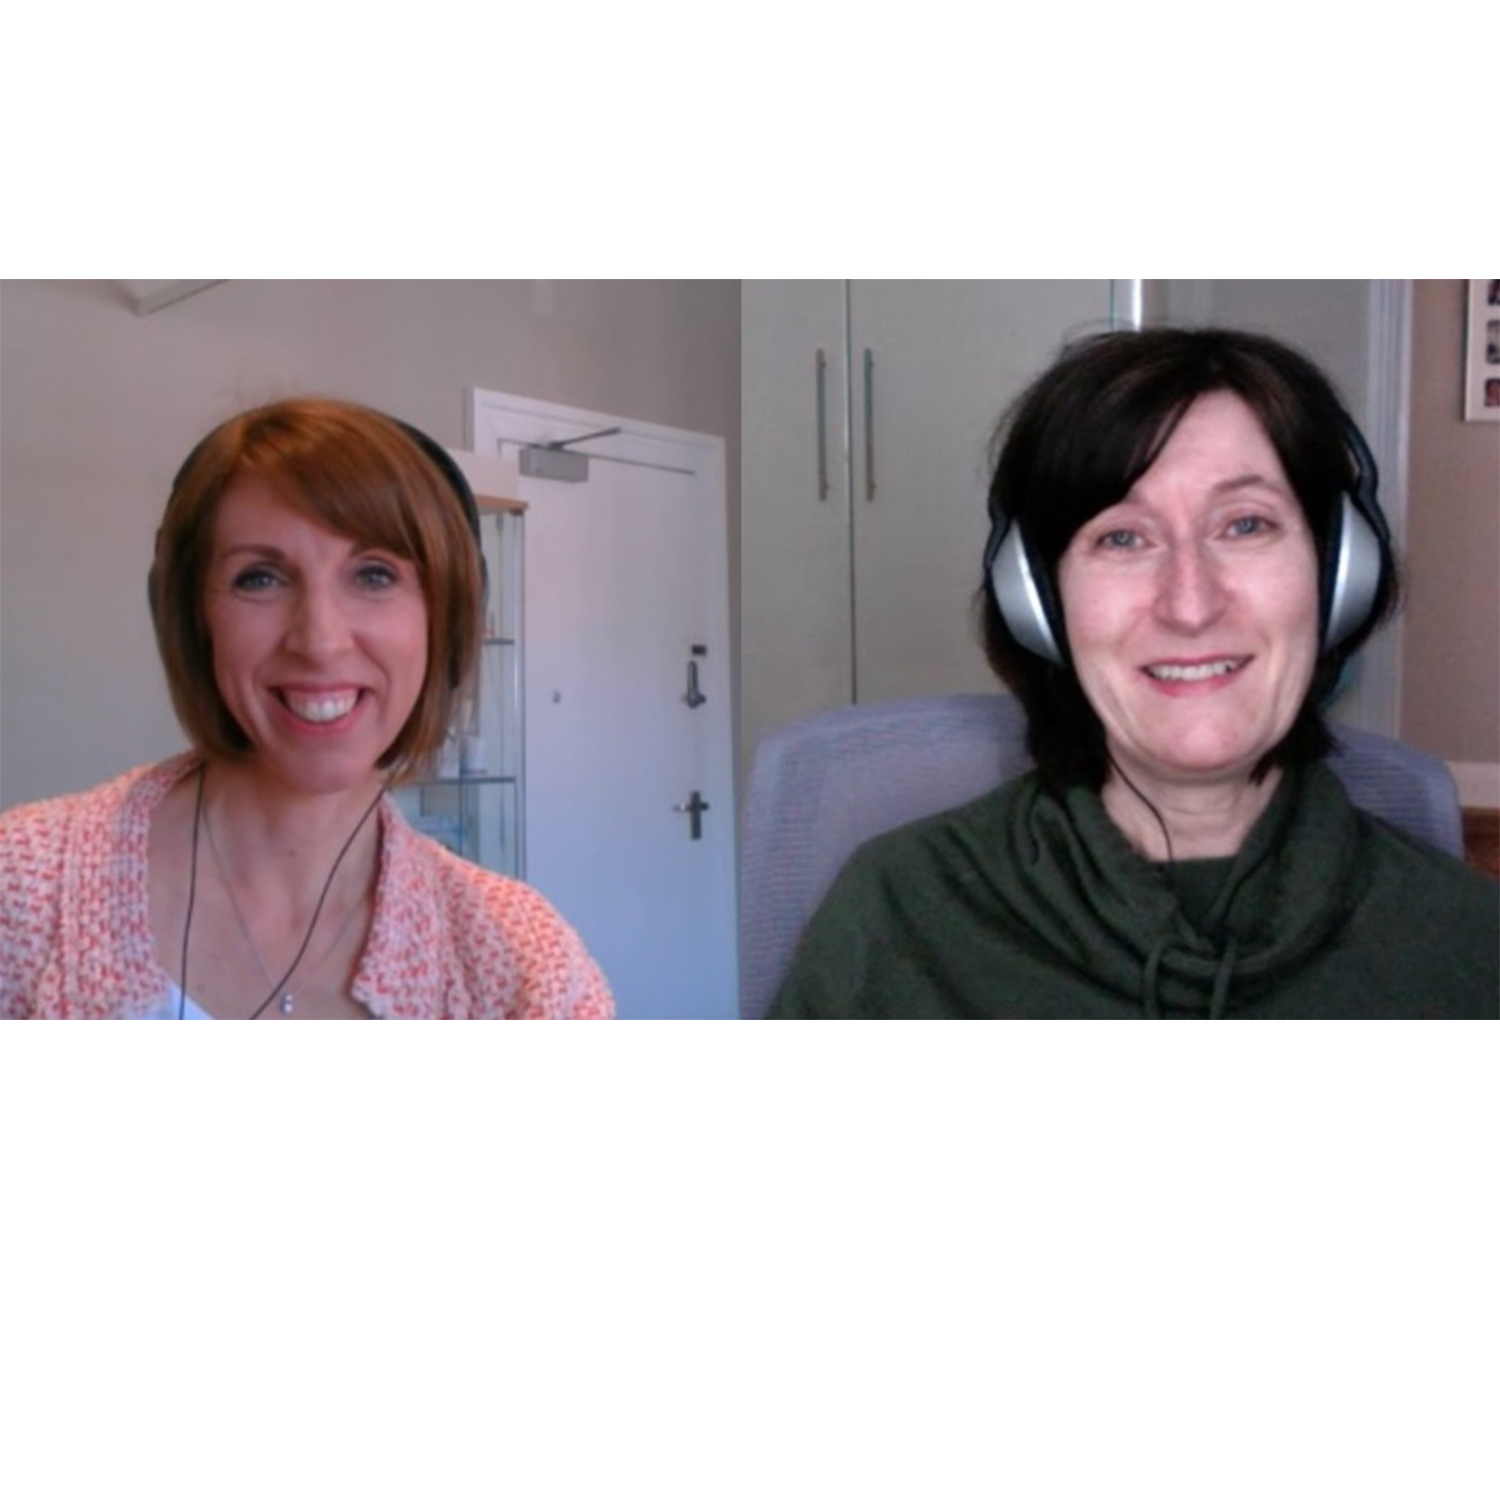 063 Psychosexual Medicine and Menopause - Dr Stephanie Goodwin & Dr Louise Newson